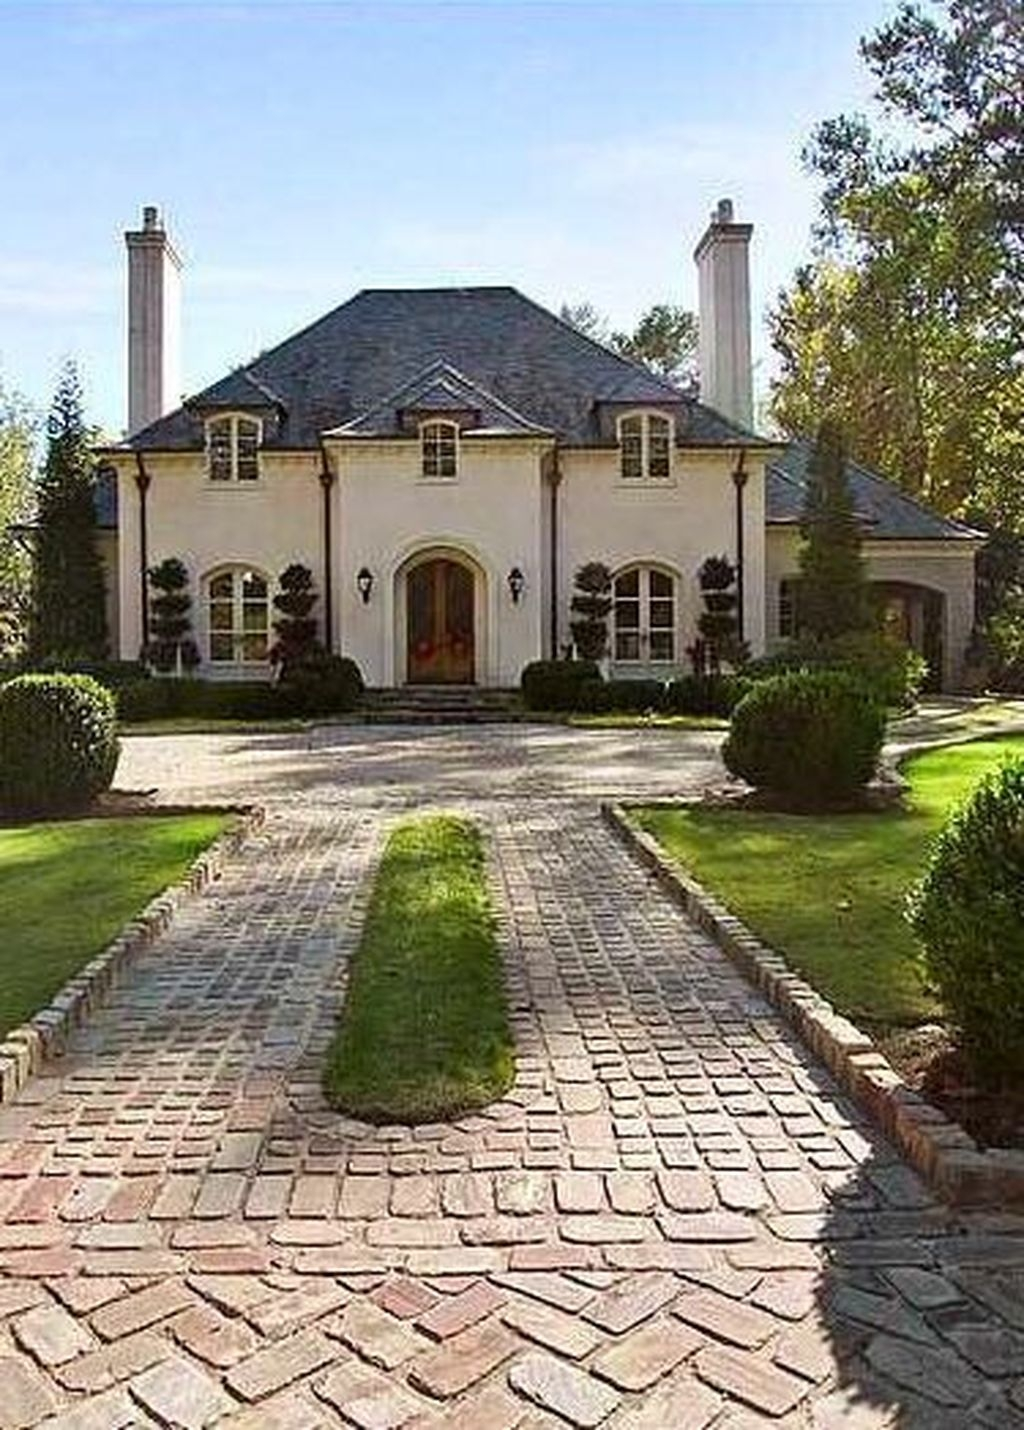 Stylish French Country Exterior For Your Home Design Inspiration 28